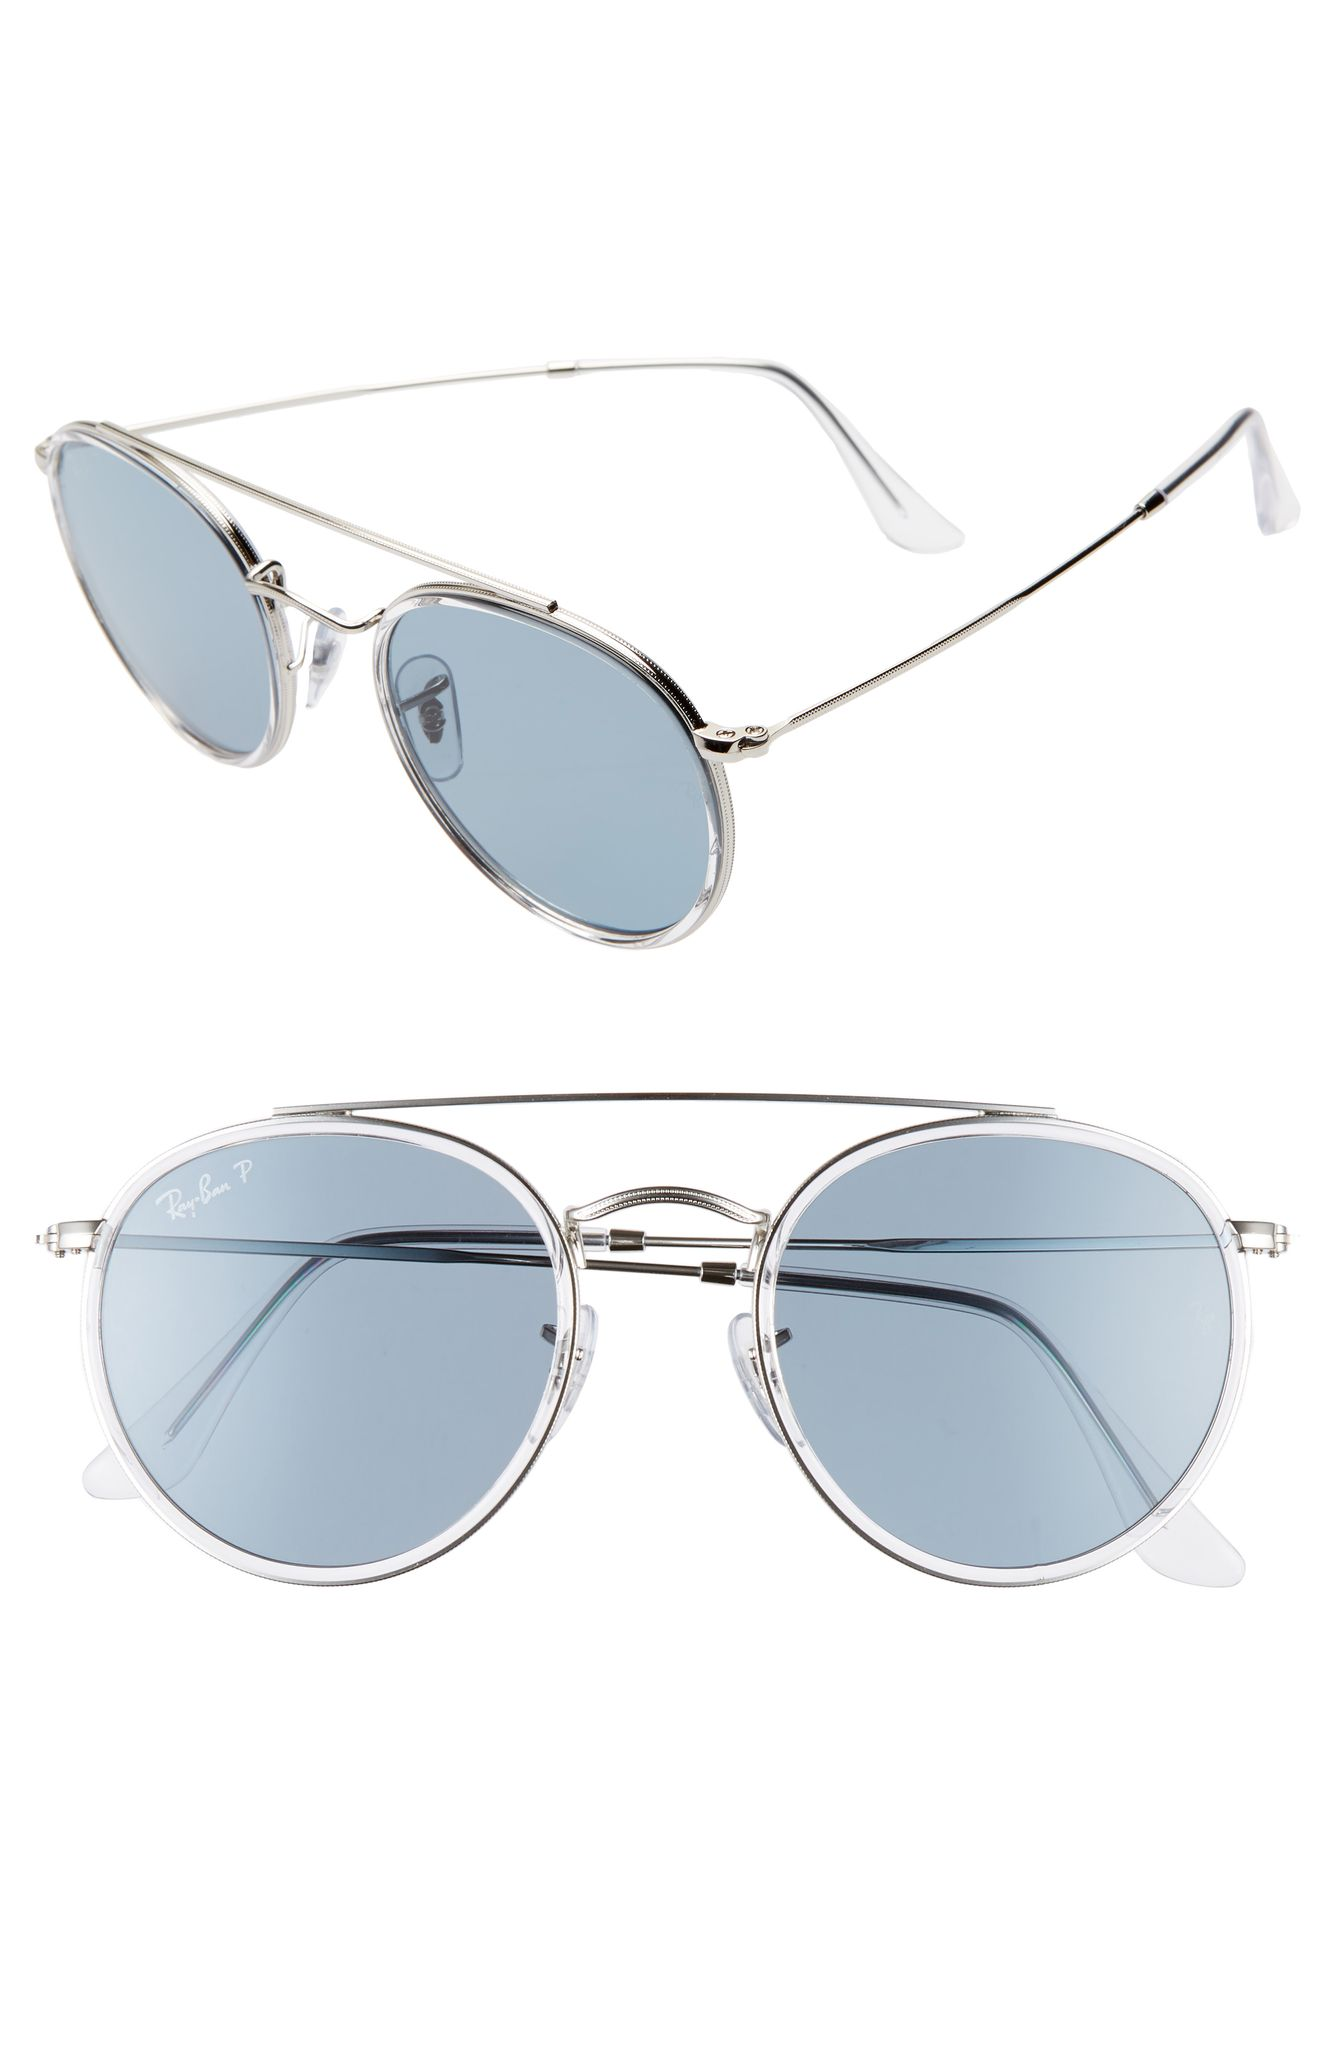 Ray-Ban 51mm Polarized Sunglasses (normally $213): NOW $141.90 (Image: Nordstrom)